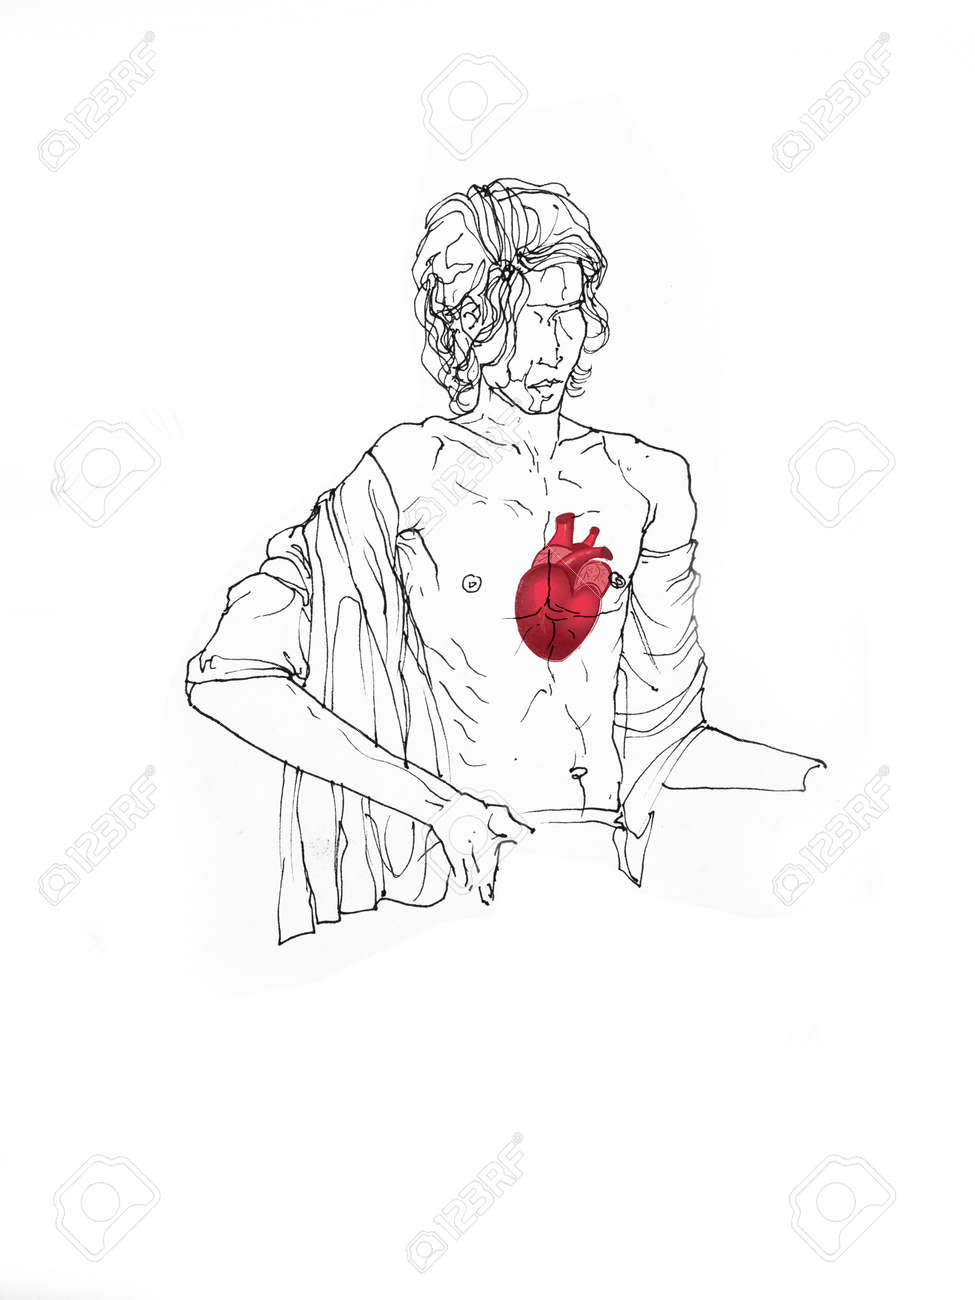 Figurative line drawing of a man sitting open chest with heart showing inside creative illustration